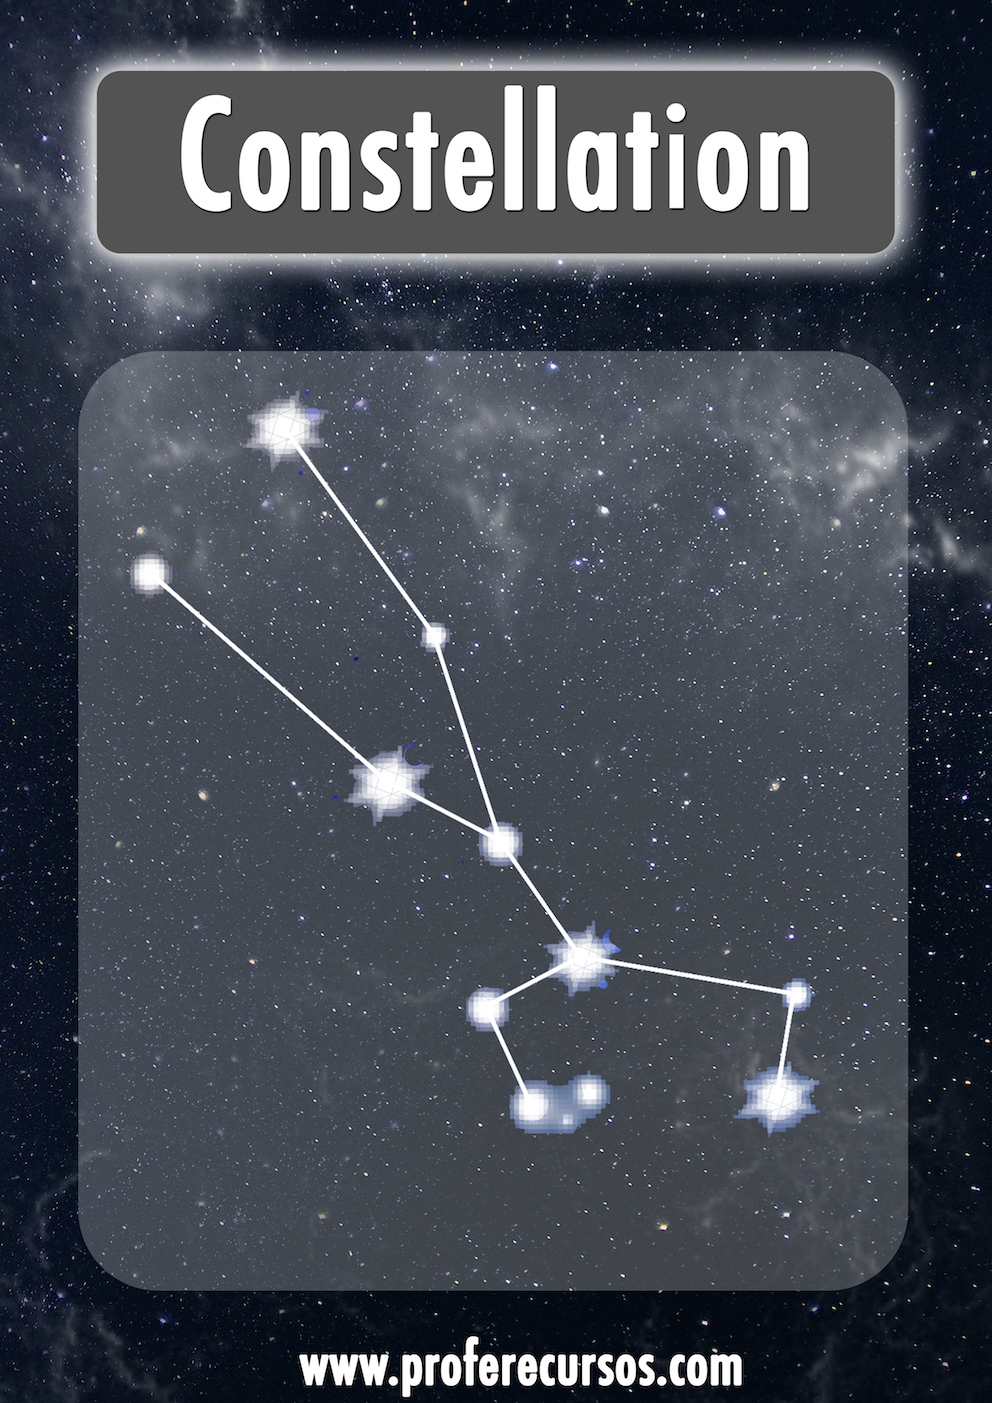 Constellation Space Vocabulary Flashcards